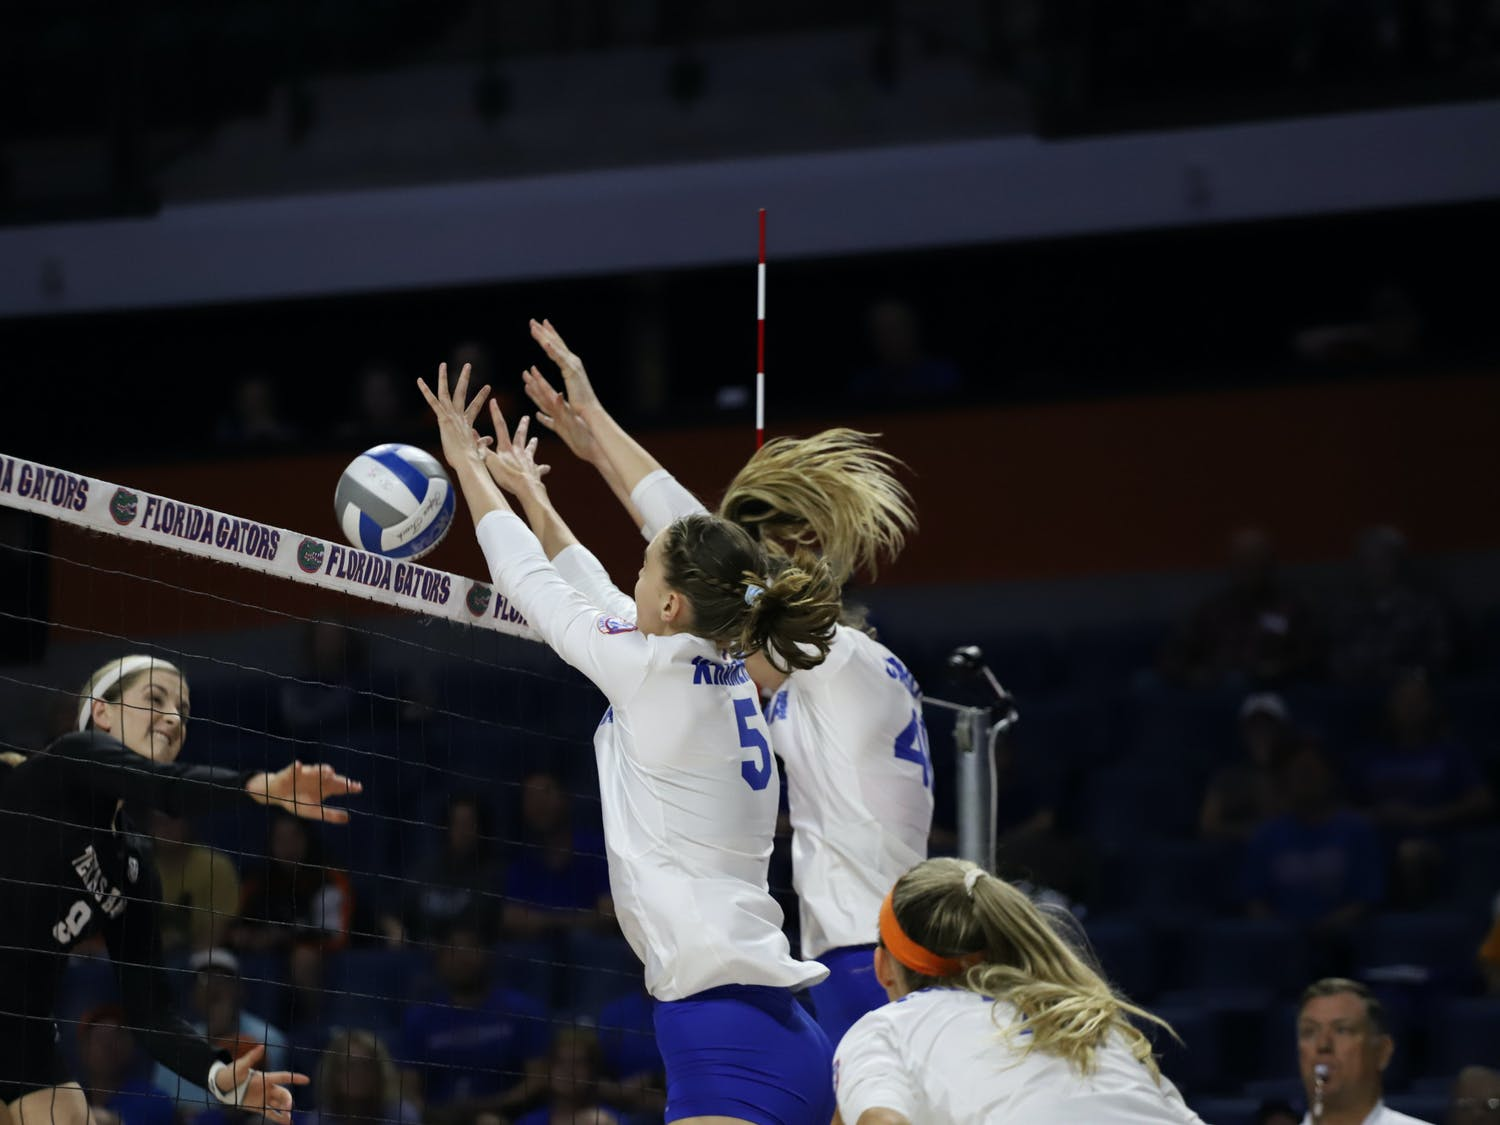 The Gators prepare for Morehead State in the second round of the NCAA Volleyball Tournament Thursday. Photo from UF-Texas A&M game in 2019.